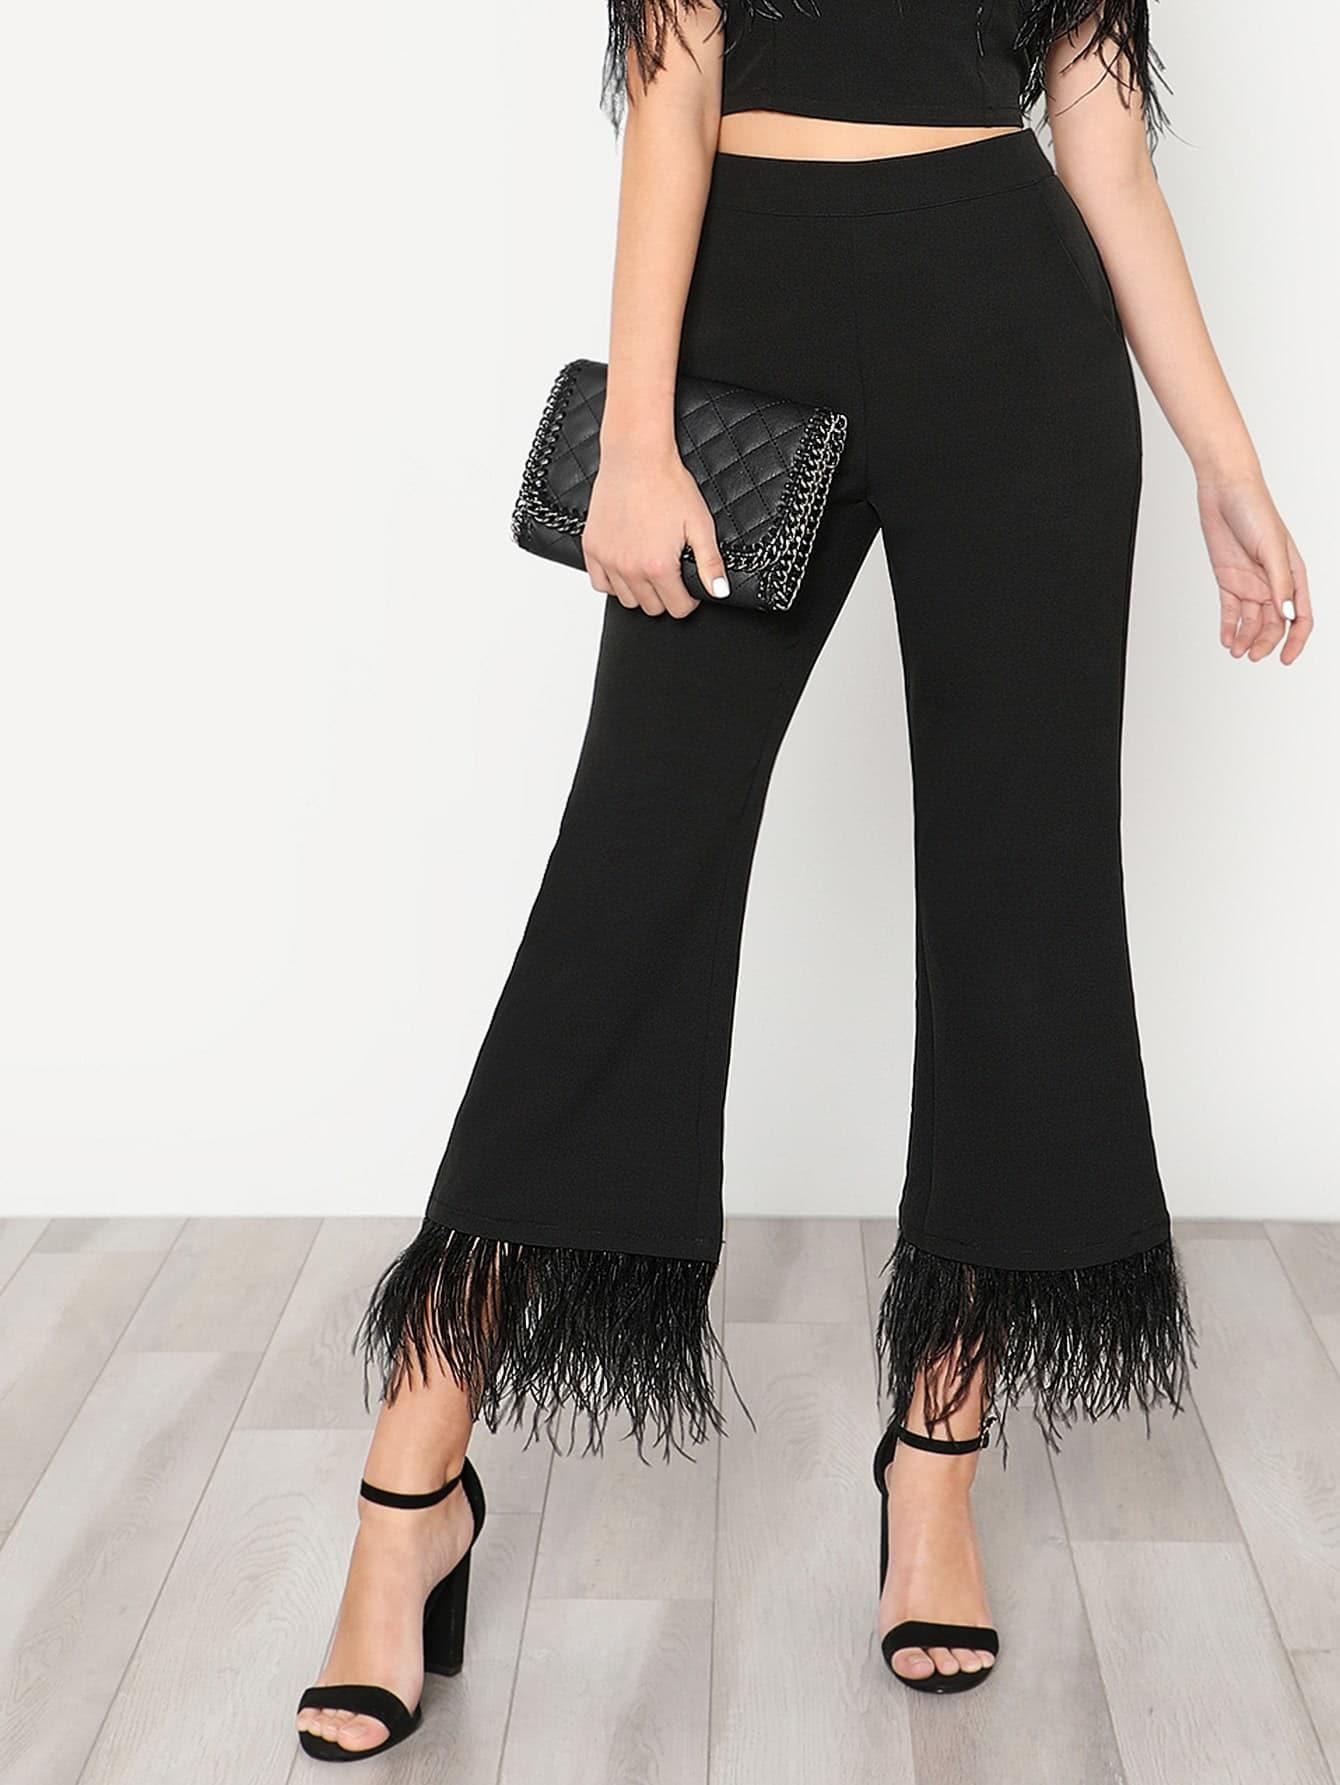 Faux Feather Trim Flare Pants faux ostrich feather fur nipple covers